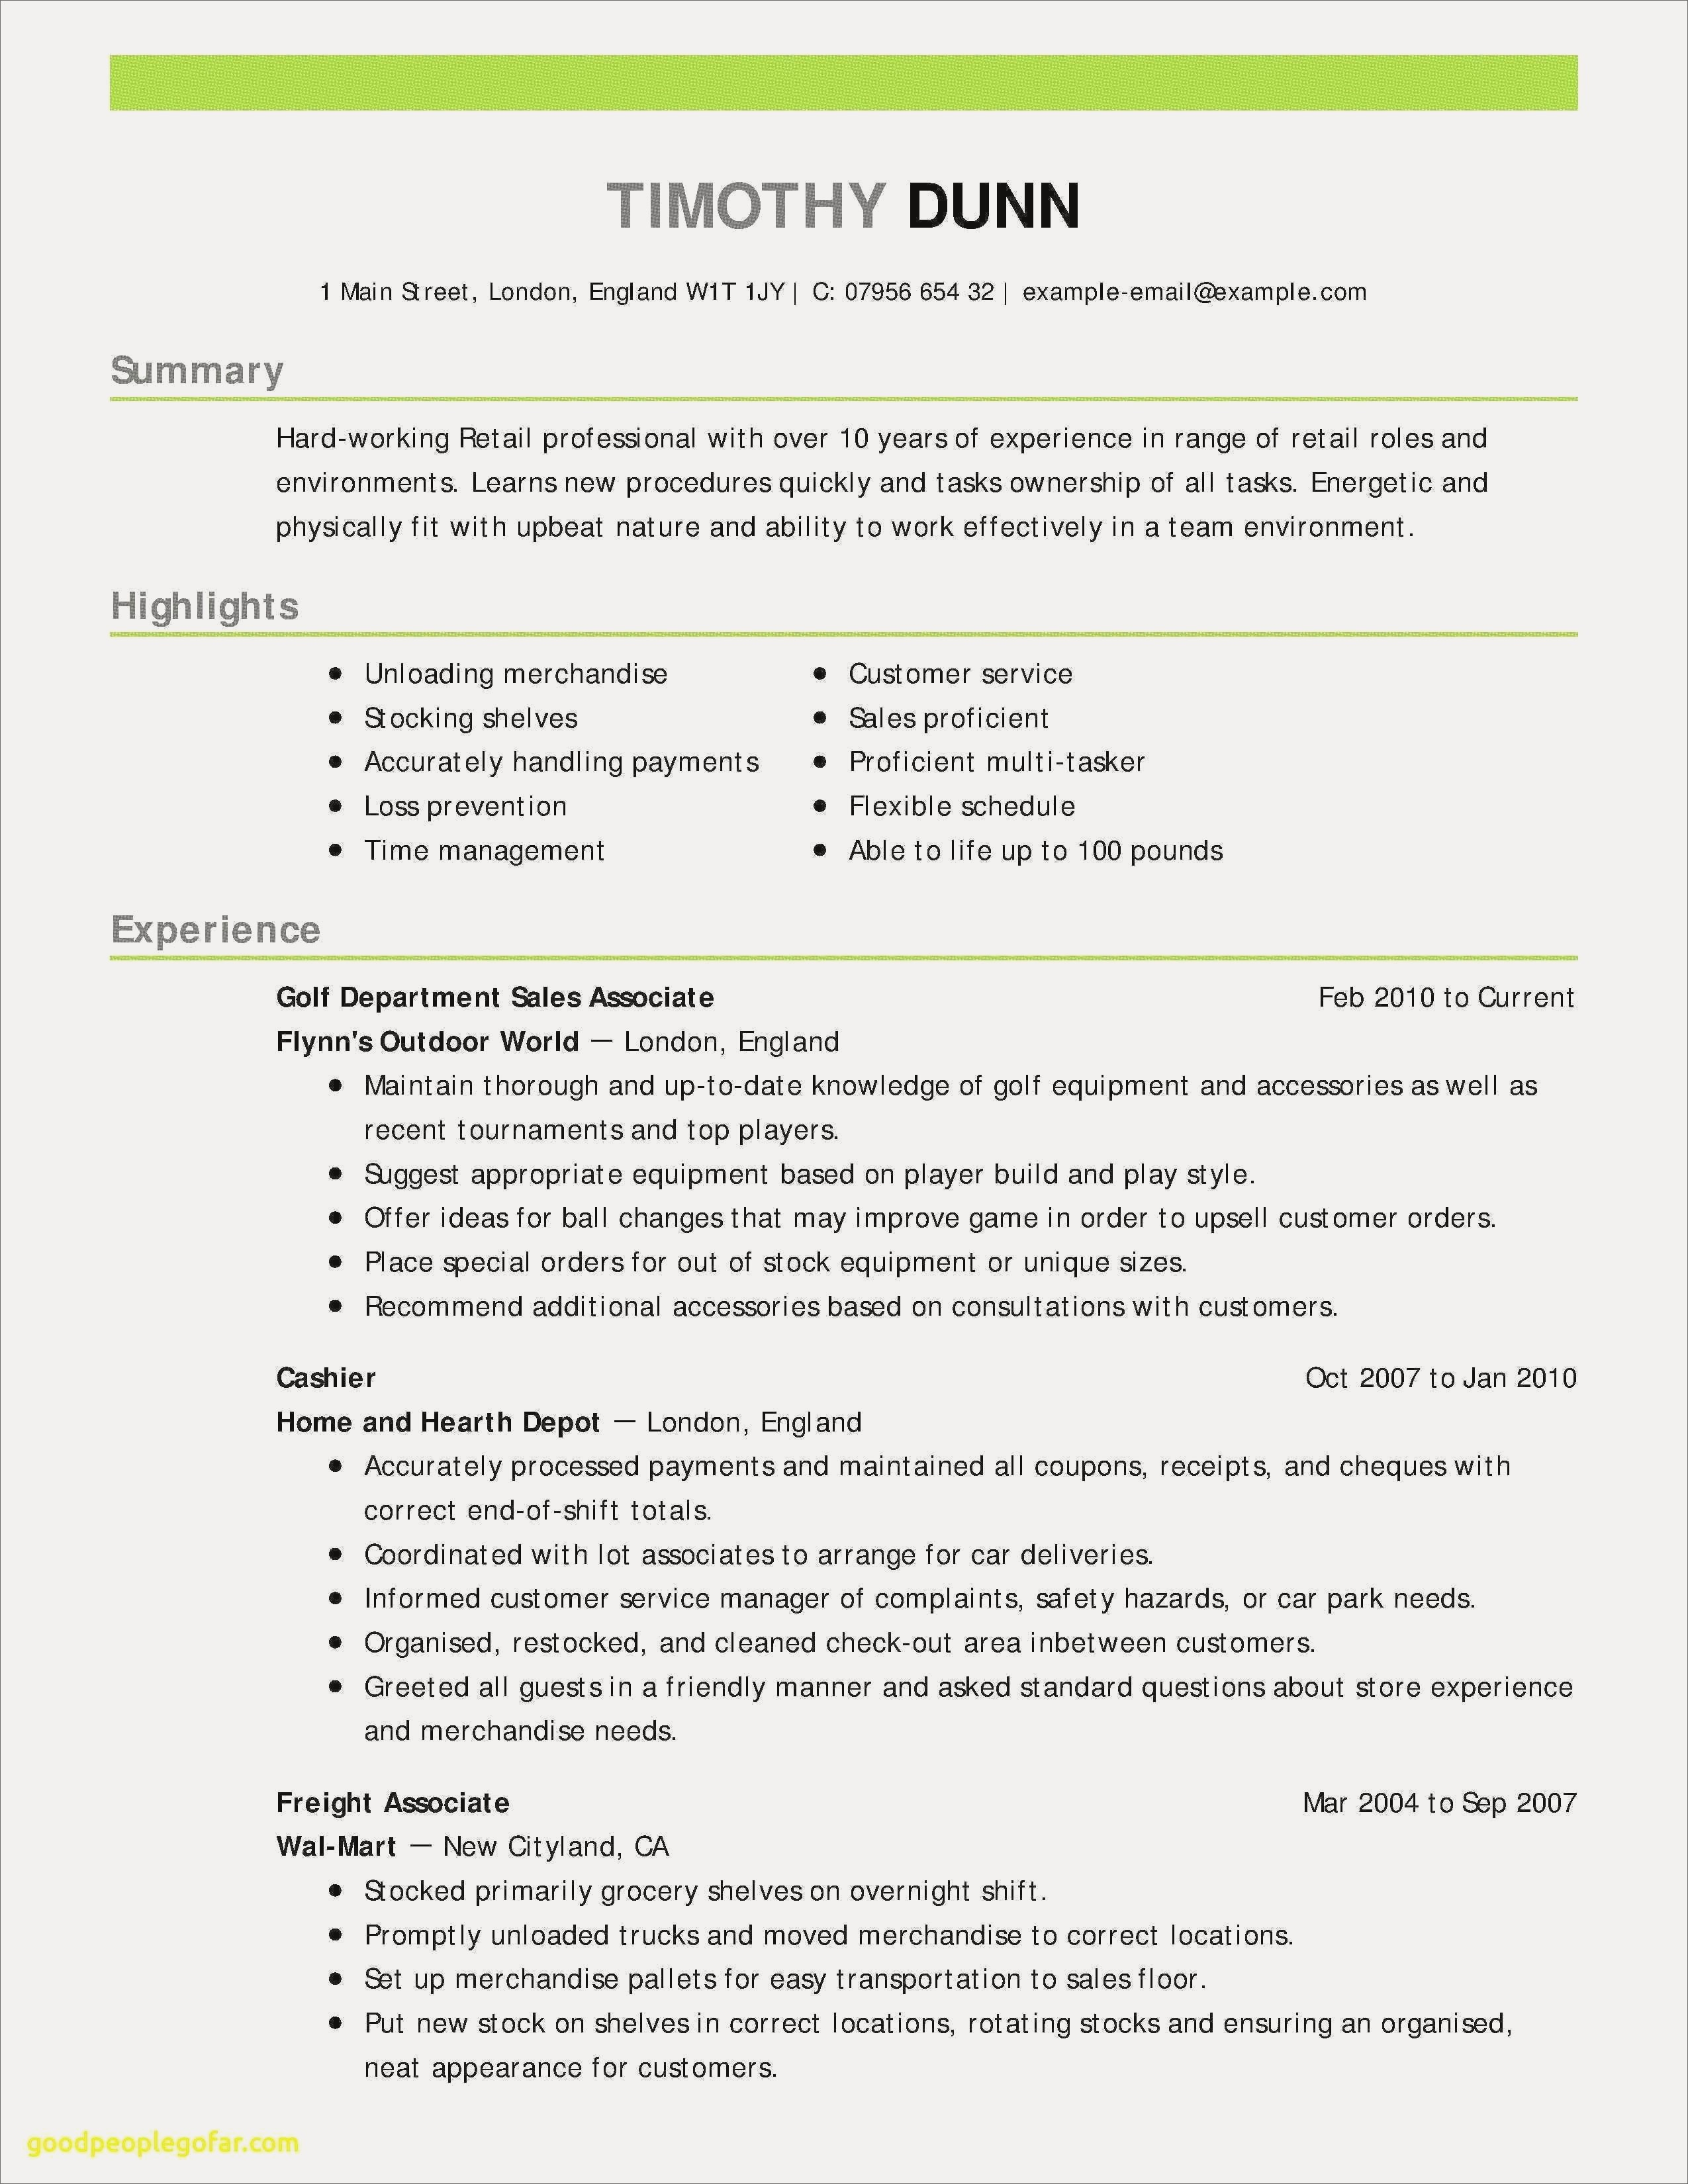 Resume Template 2018 - Valet Parking Resume Sample Refrence Customer Service Resume Sample